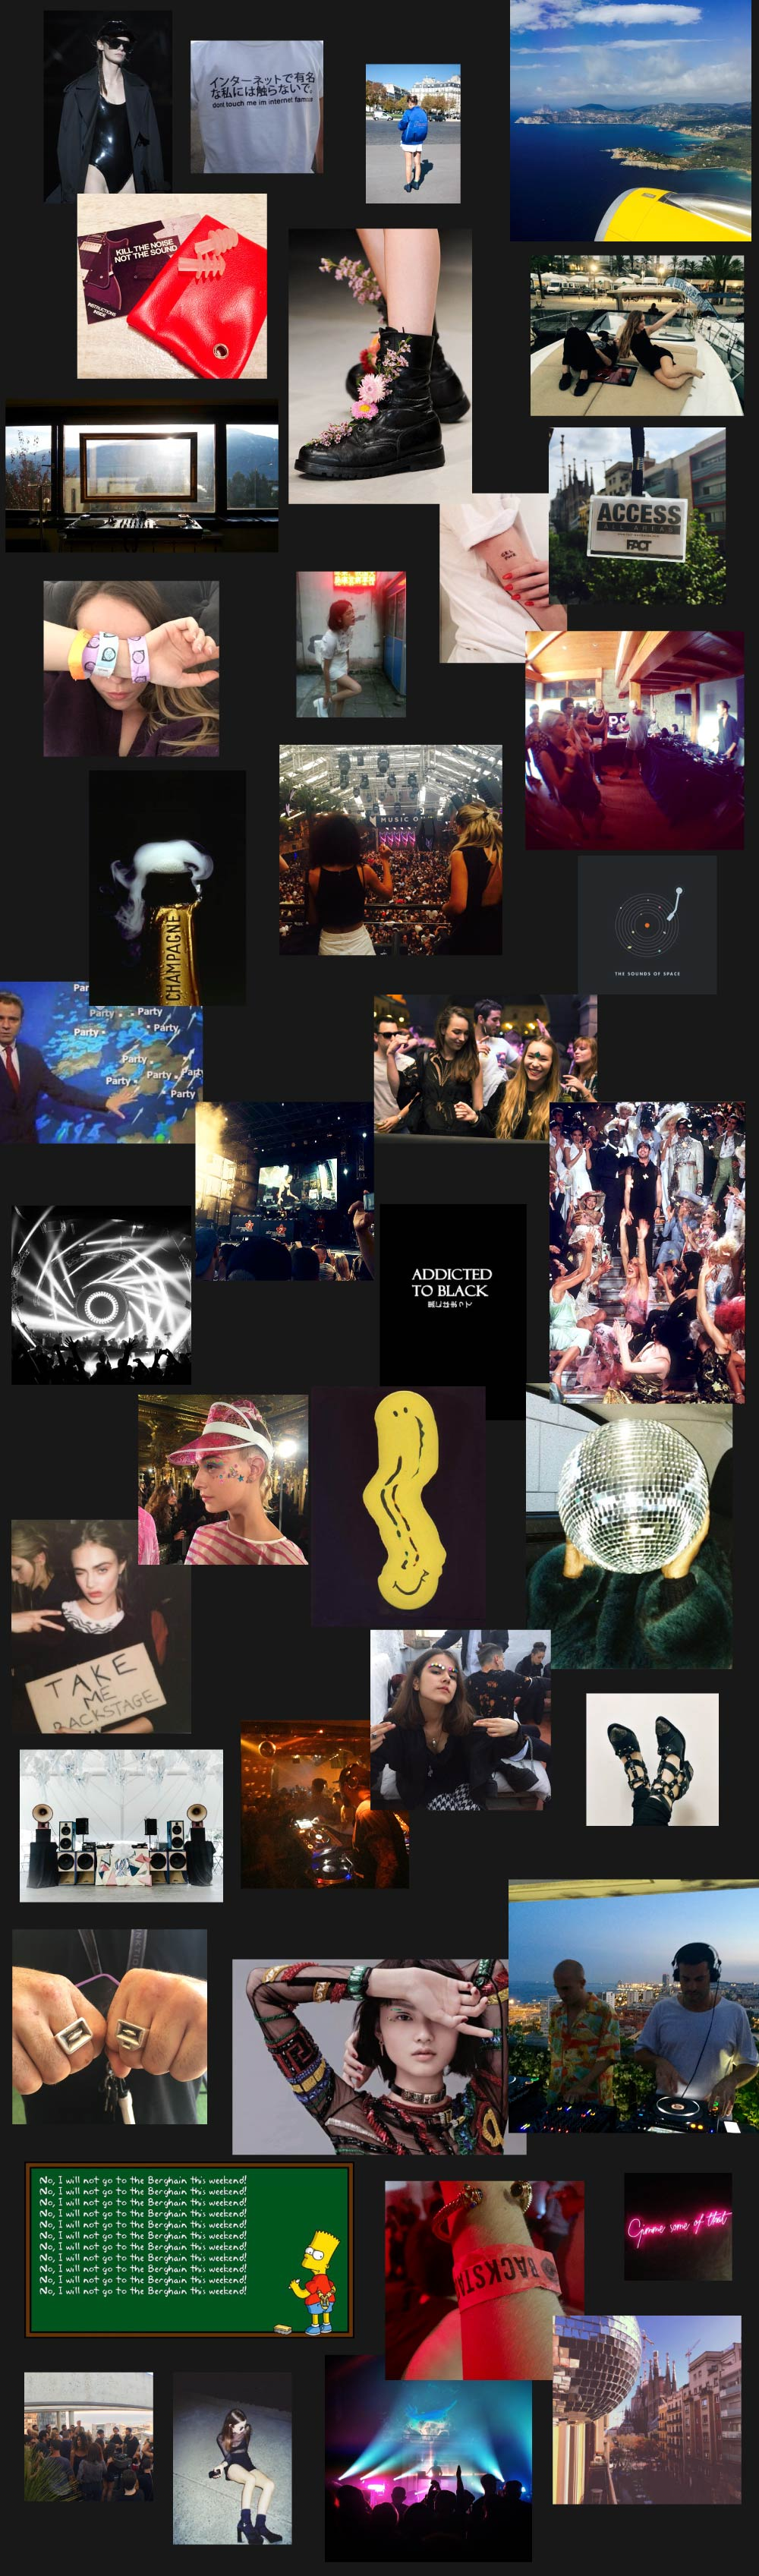 This is a collage of TechnoBabes inspiration regarding the Party Lifestyle they live